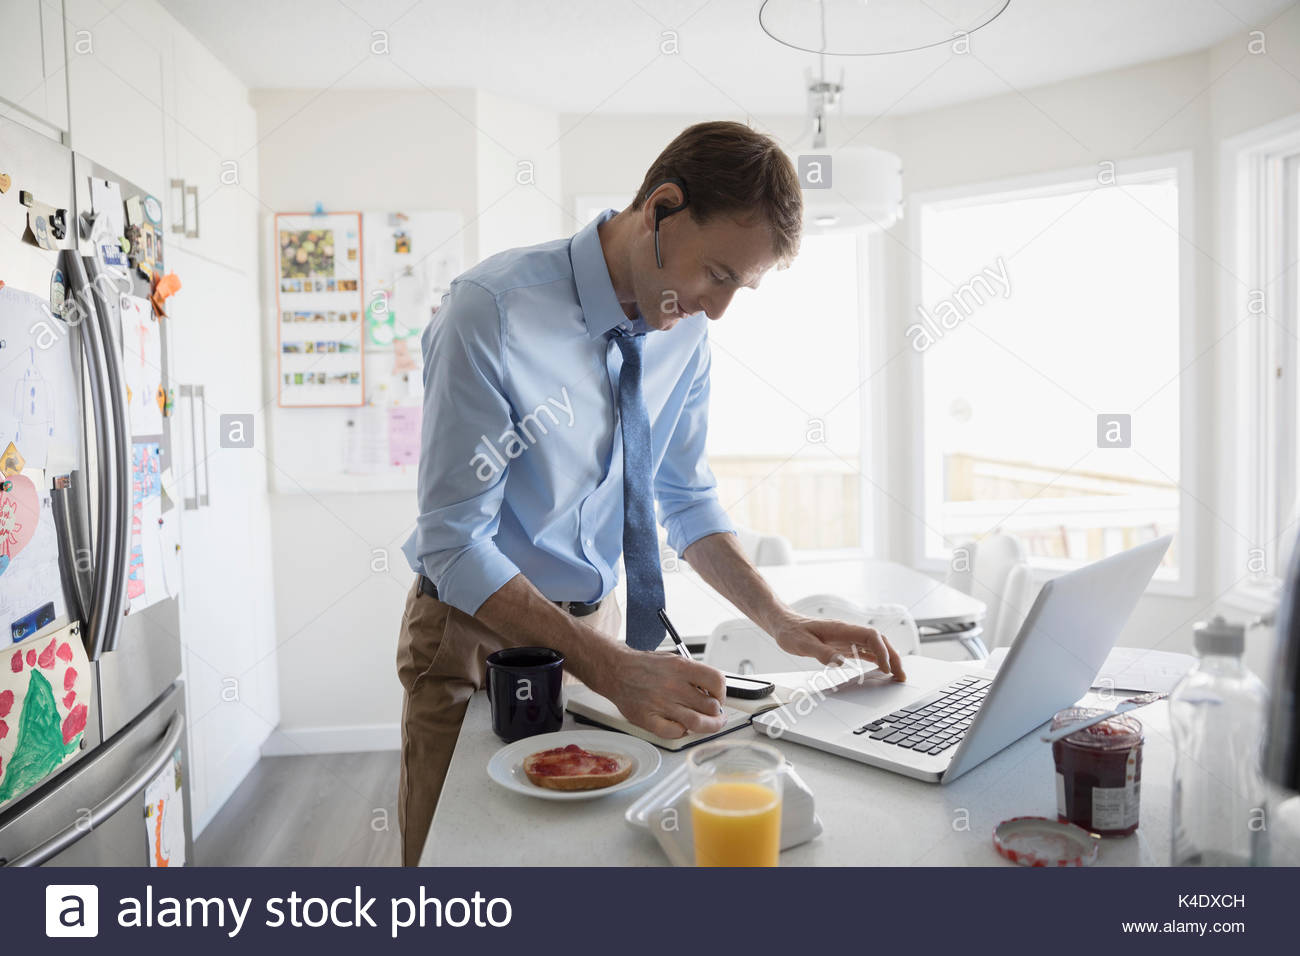 Businessman eating breakfast and working at laptop in morning kitchen - Stock Image